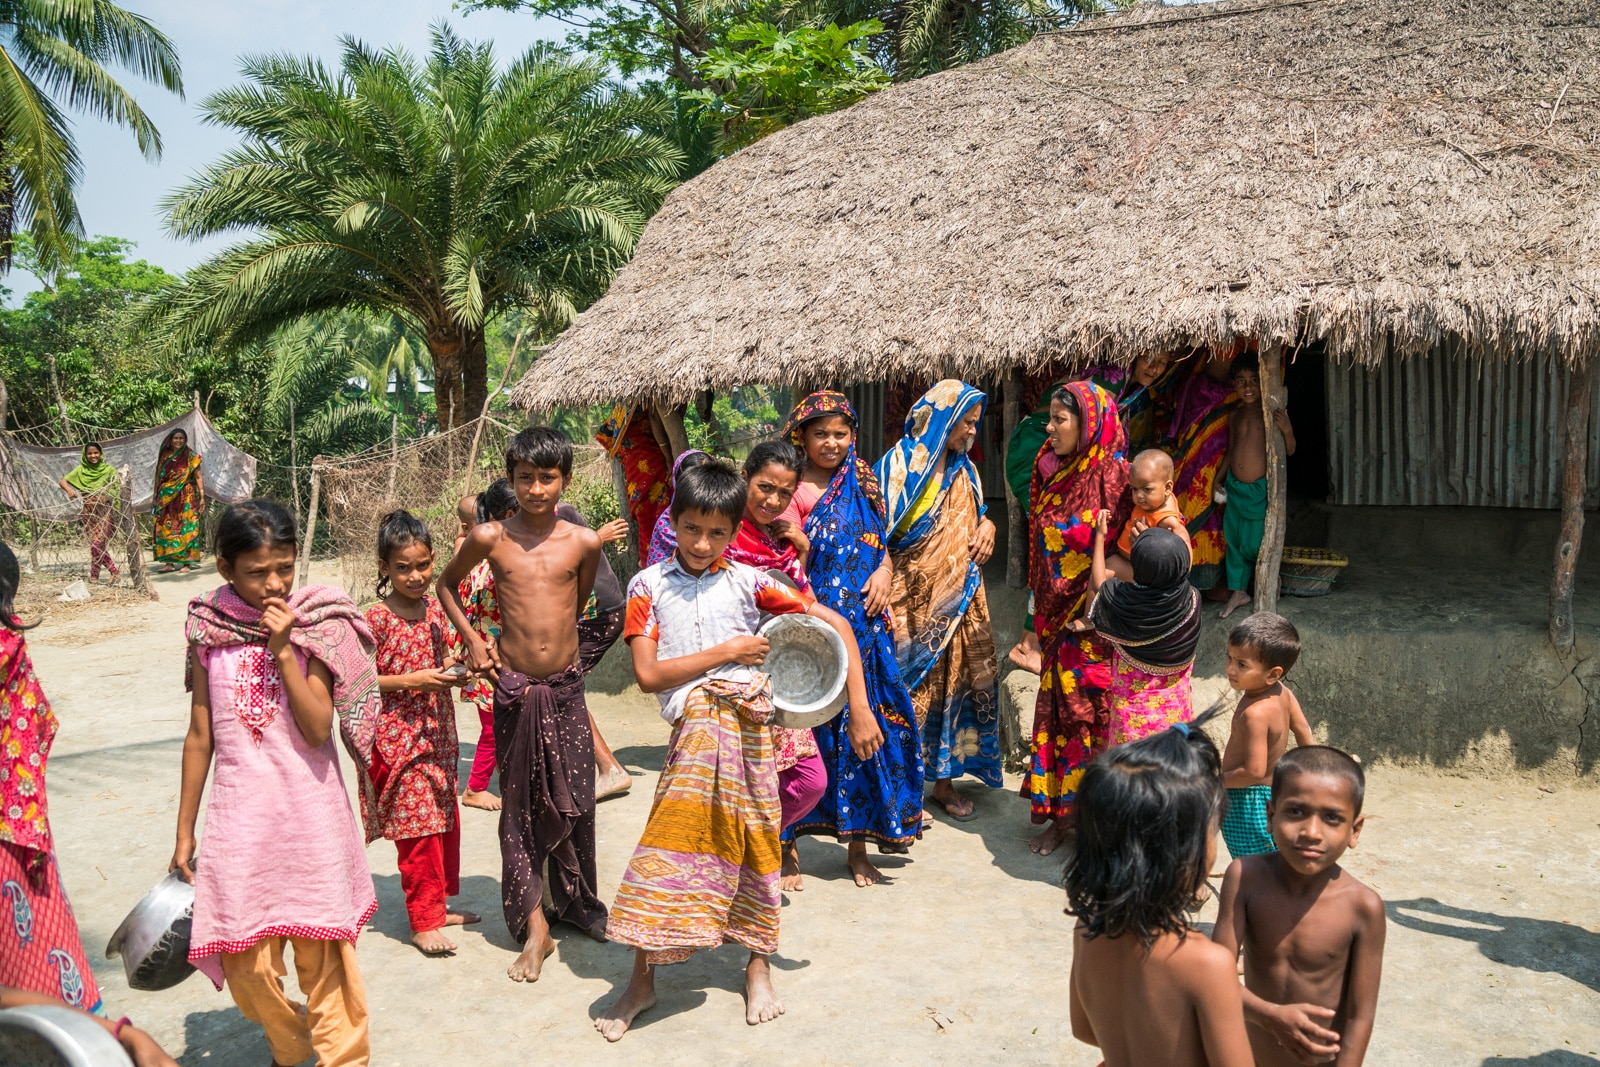 Guide to Nijhum Dwip, Bangladesh - Villagers outside a hut - Lost With Purpose travel blog